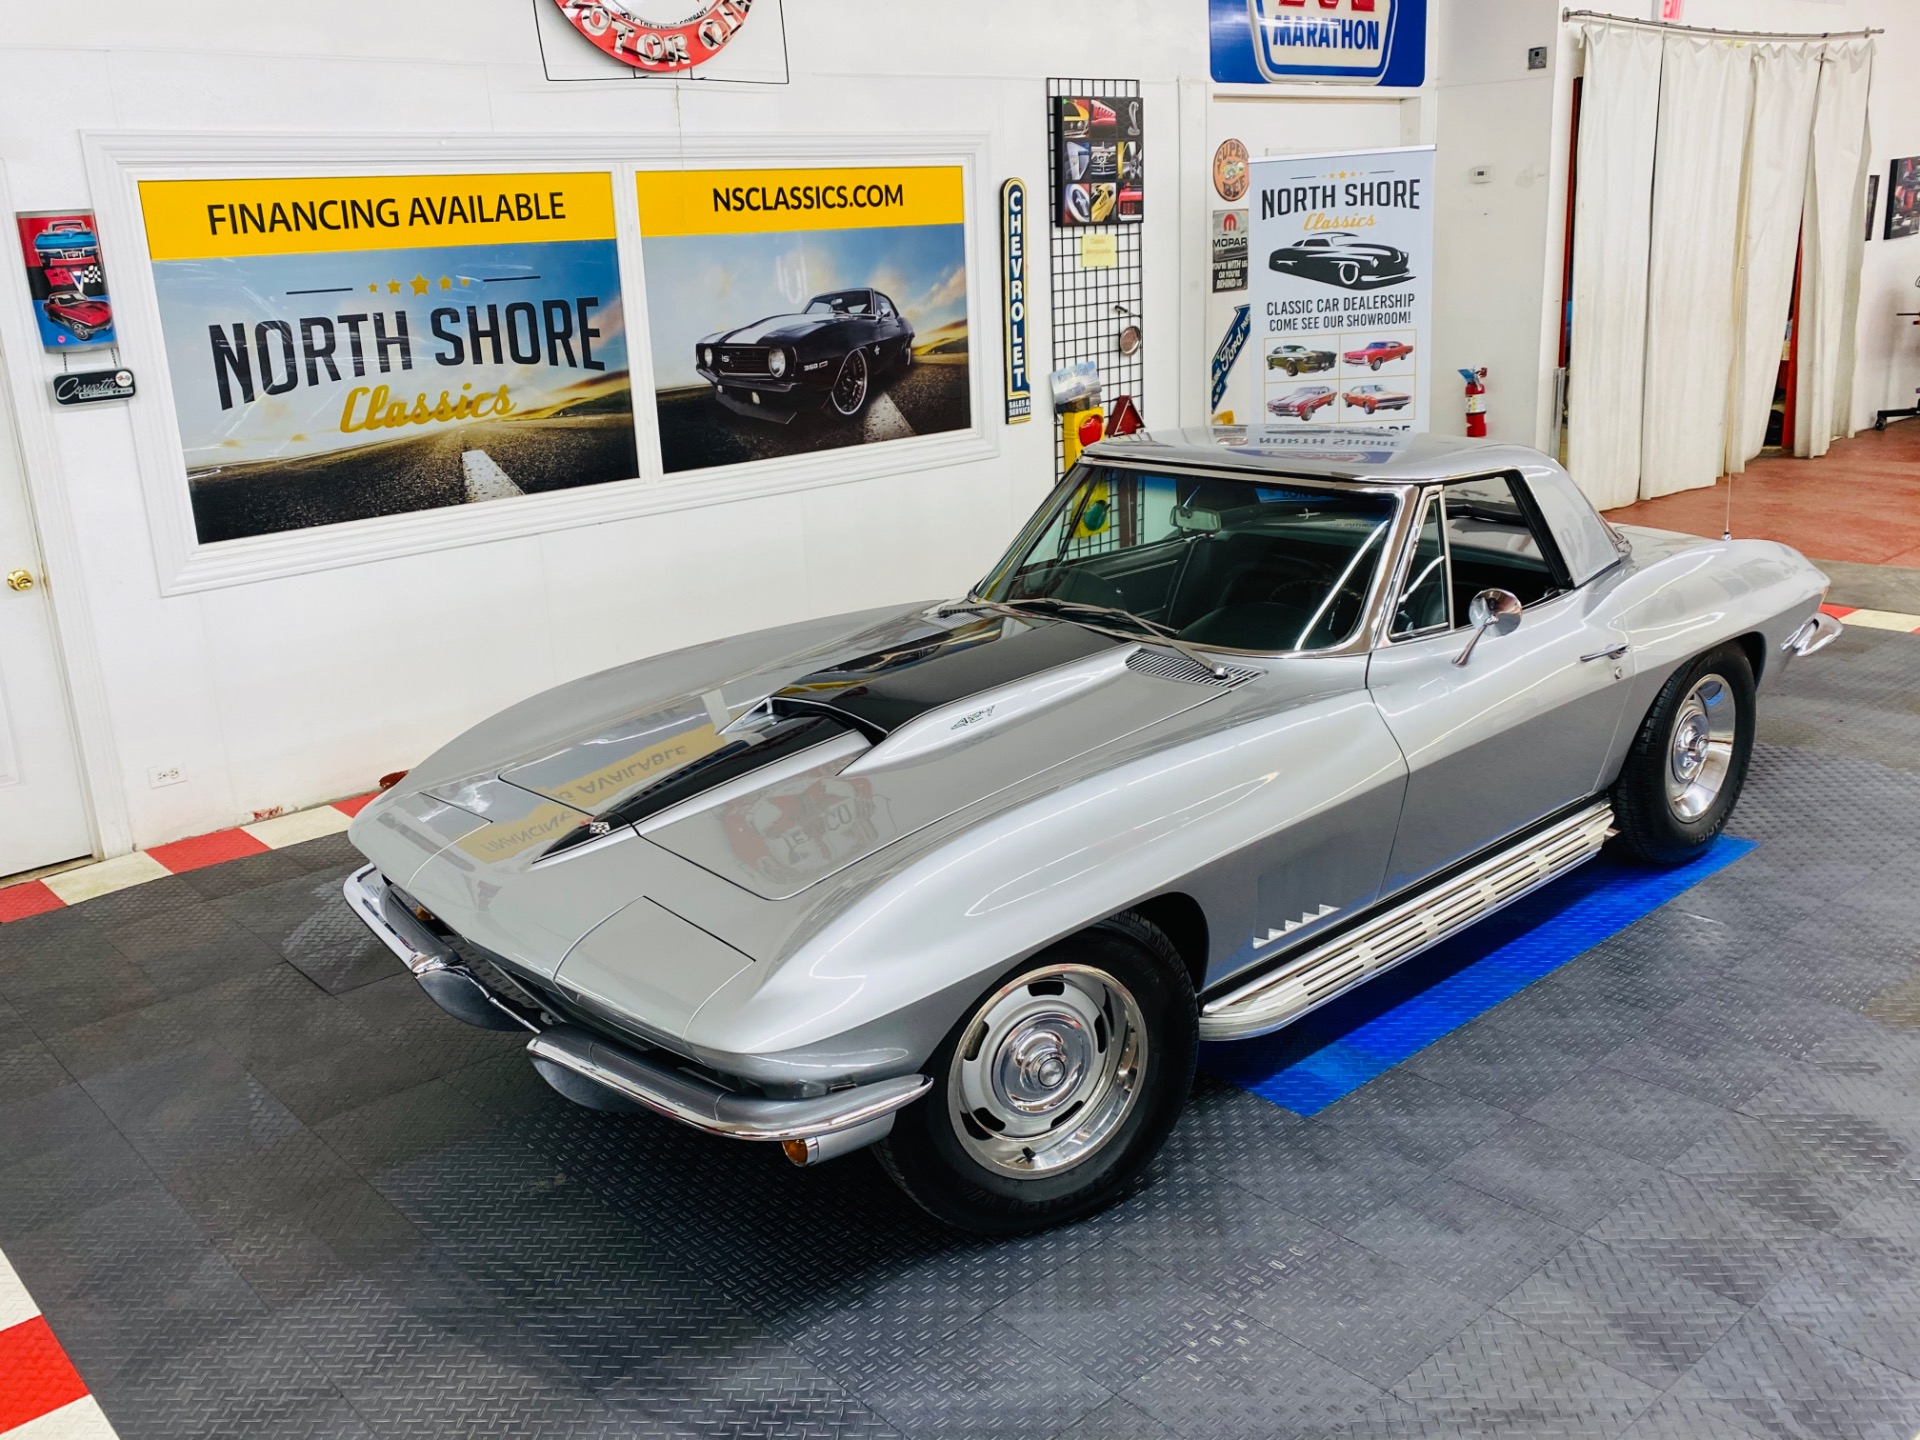 Photo 1967 Chevrolet Corvette - TWO TOP CONVERTIBLE - TRI POWER 427 - TANK STICKER - SEE VIDEO